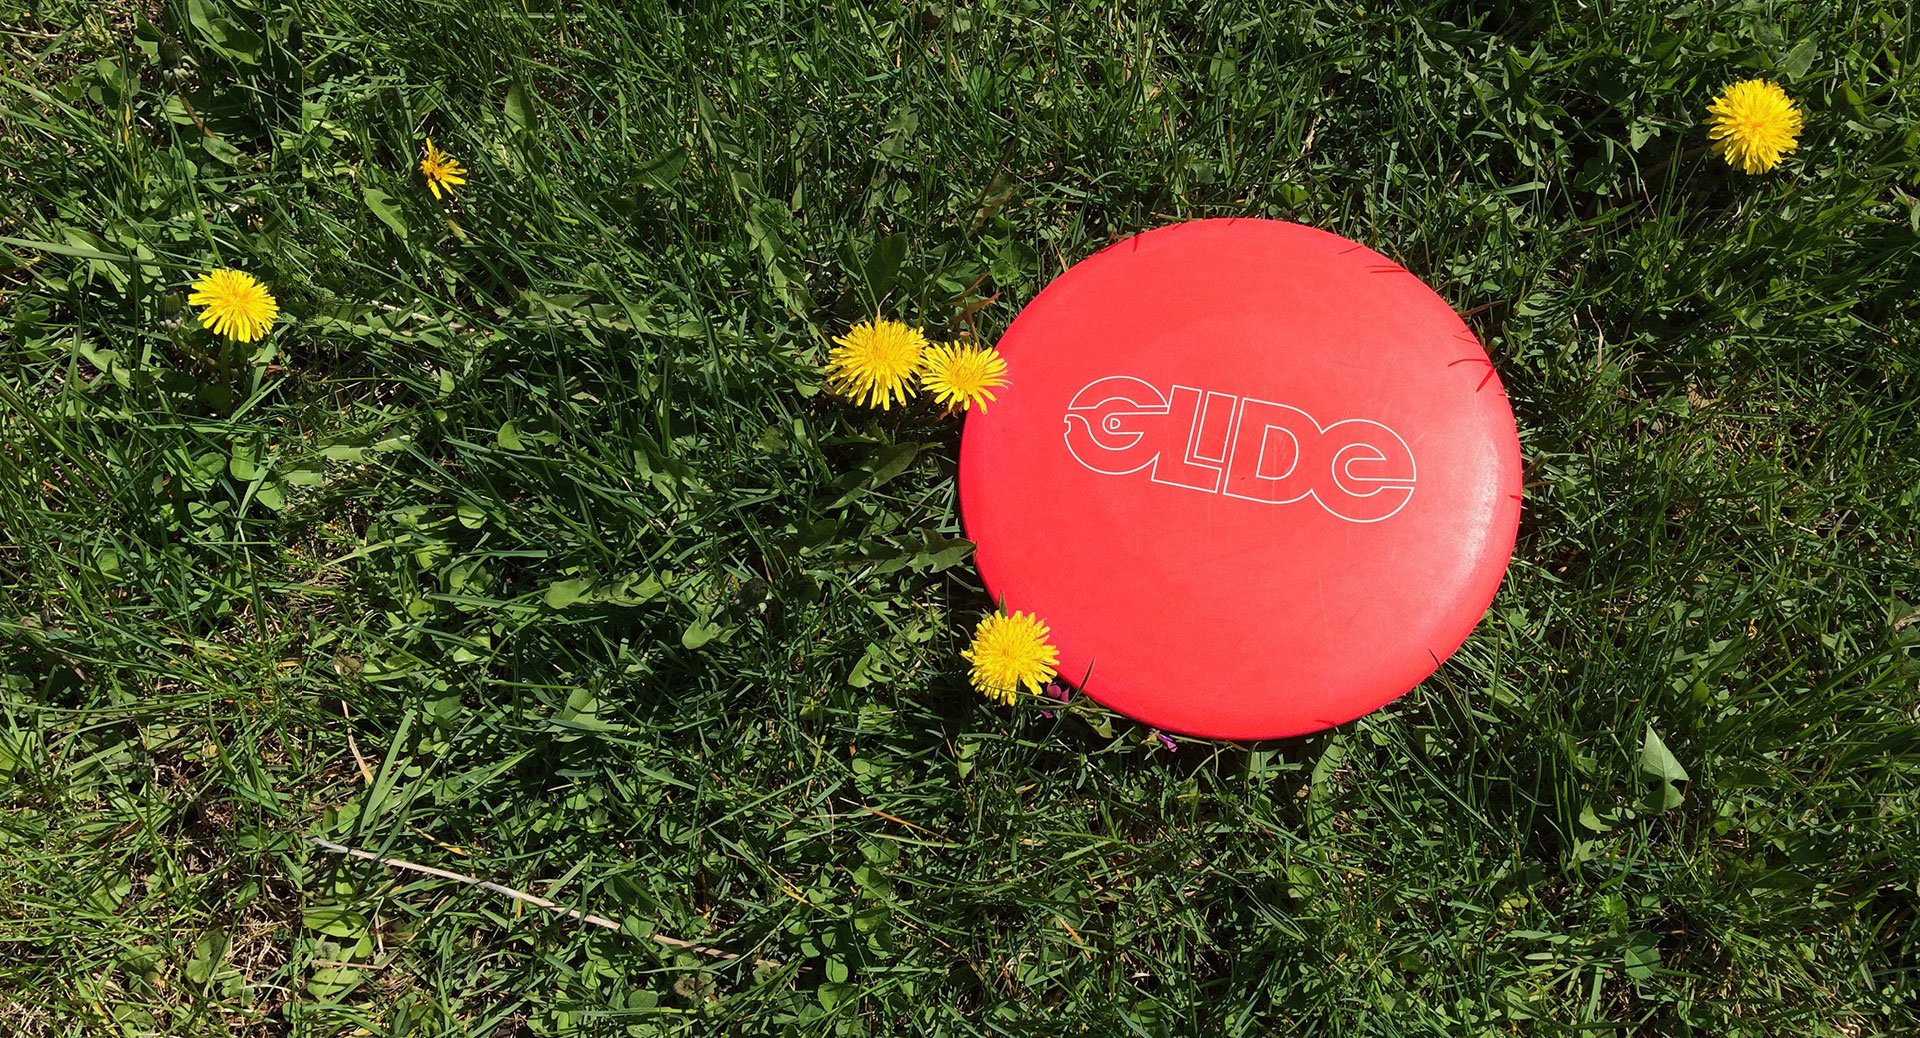 An example of brand identity design for Glide. The photo shows a disc golf disc laying on the ground with the new Glide logo printed on it, which was created by Phonographik Design Studio